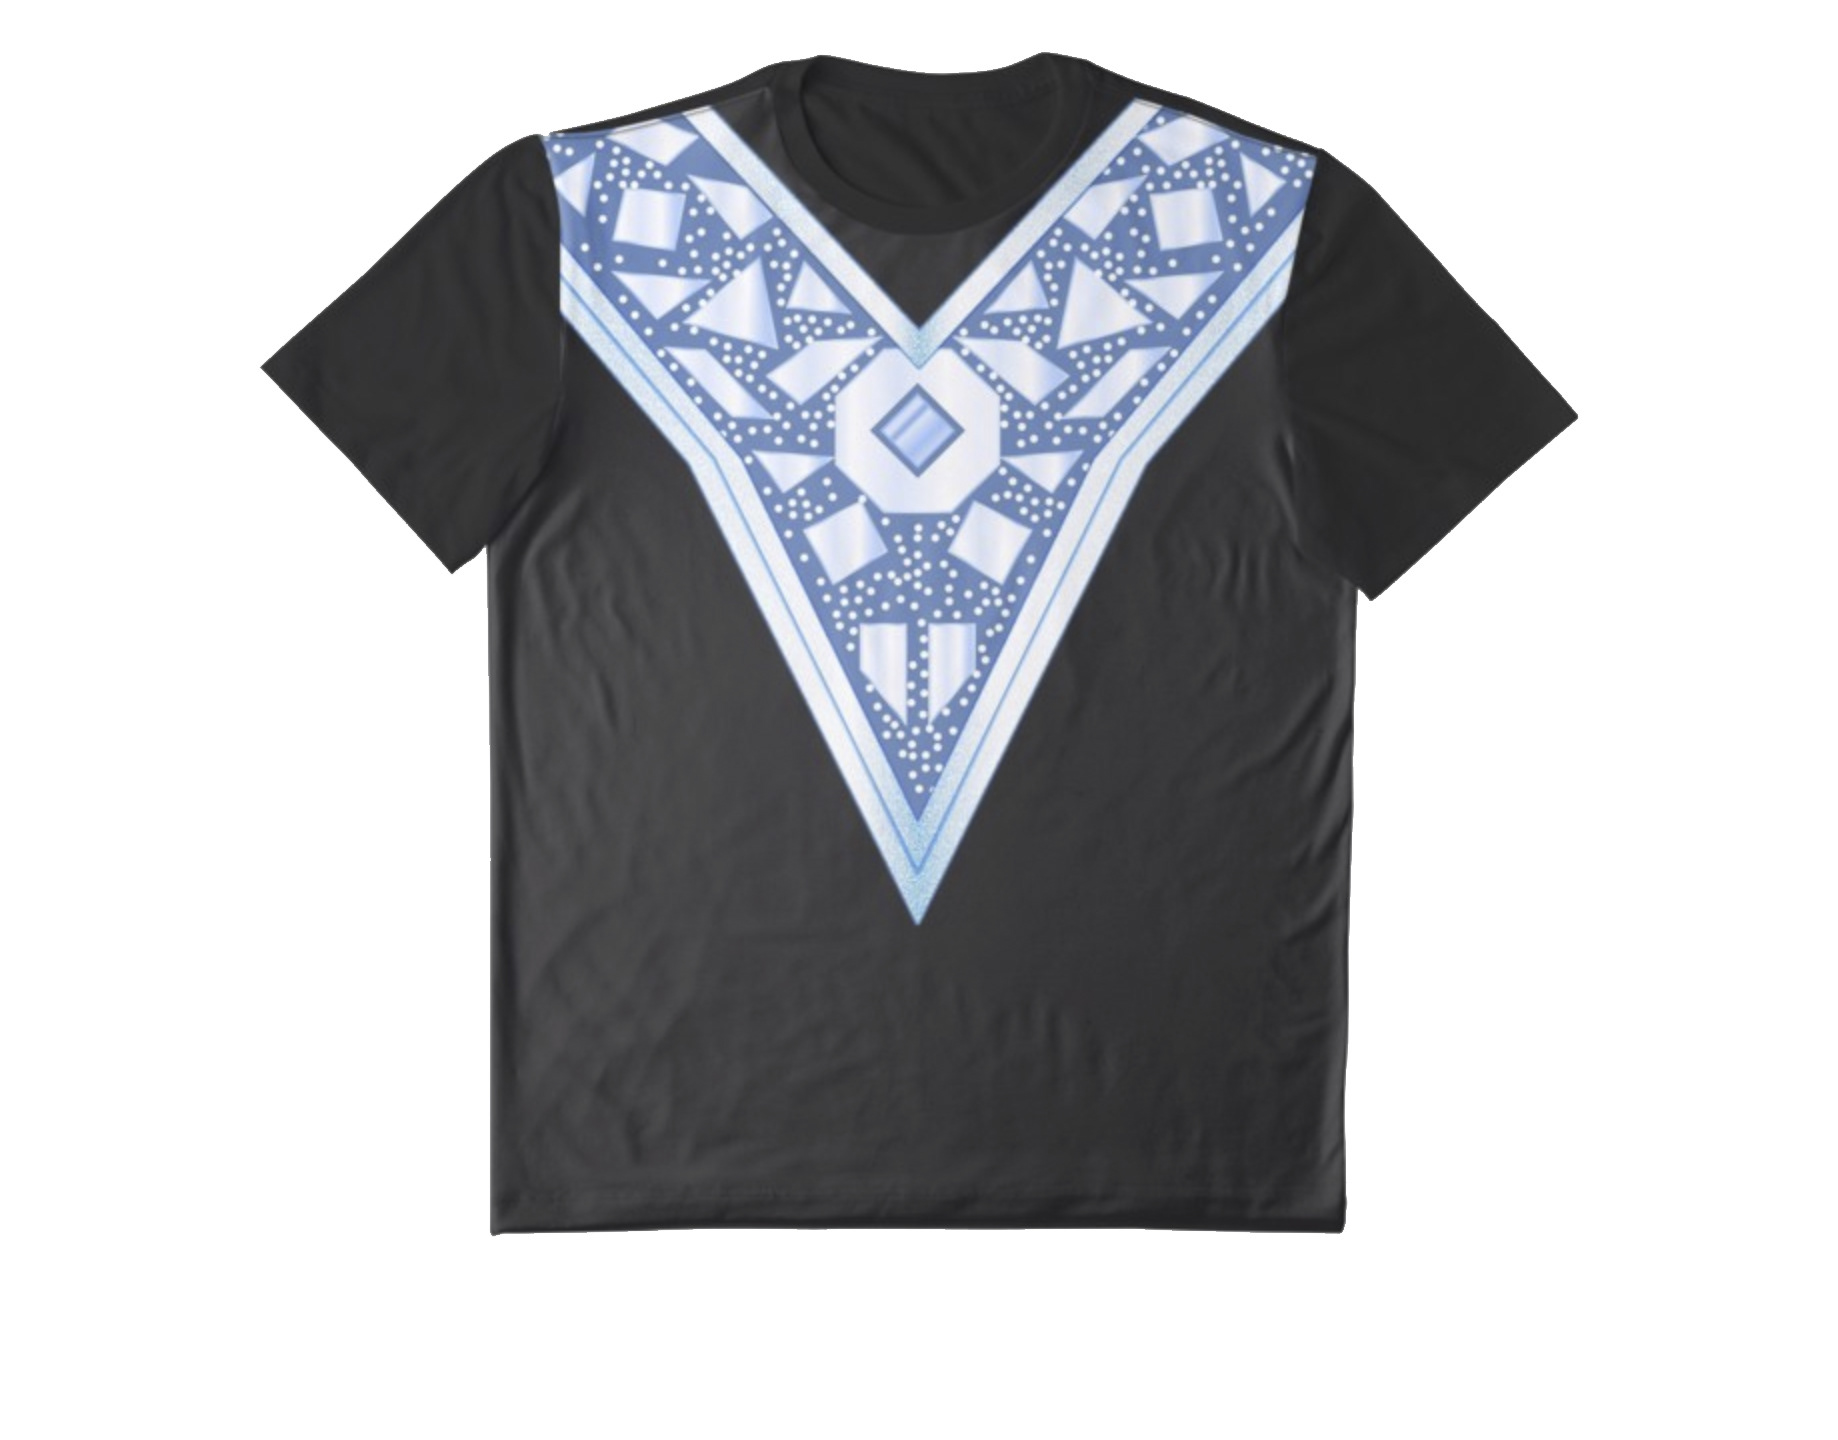 cd1bf2b6c Klick Tee Shop The Hottest T-shirts in the World - COSTUME TEES